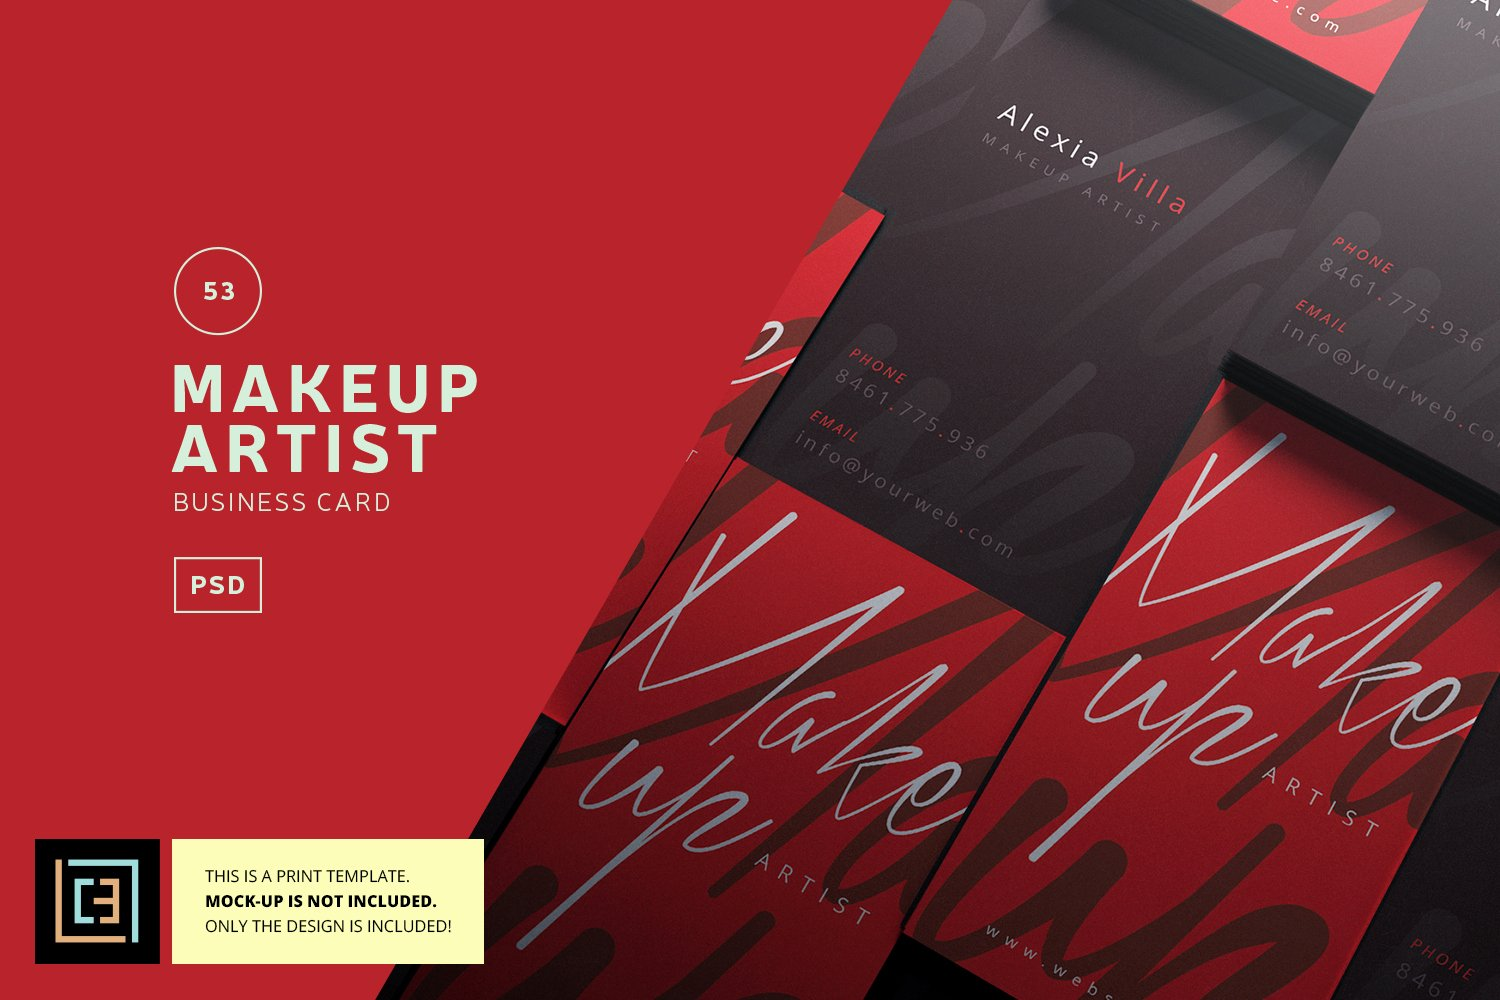 Makeup Artist Bussiness Cards Lovely Makeup Artist Business Card Bc053